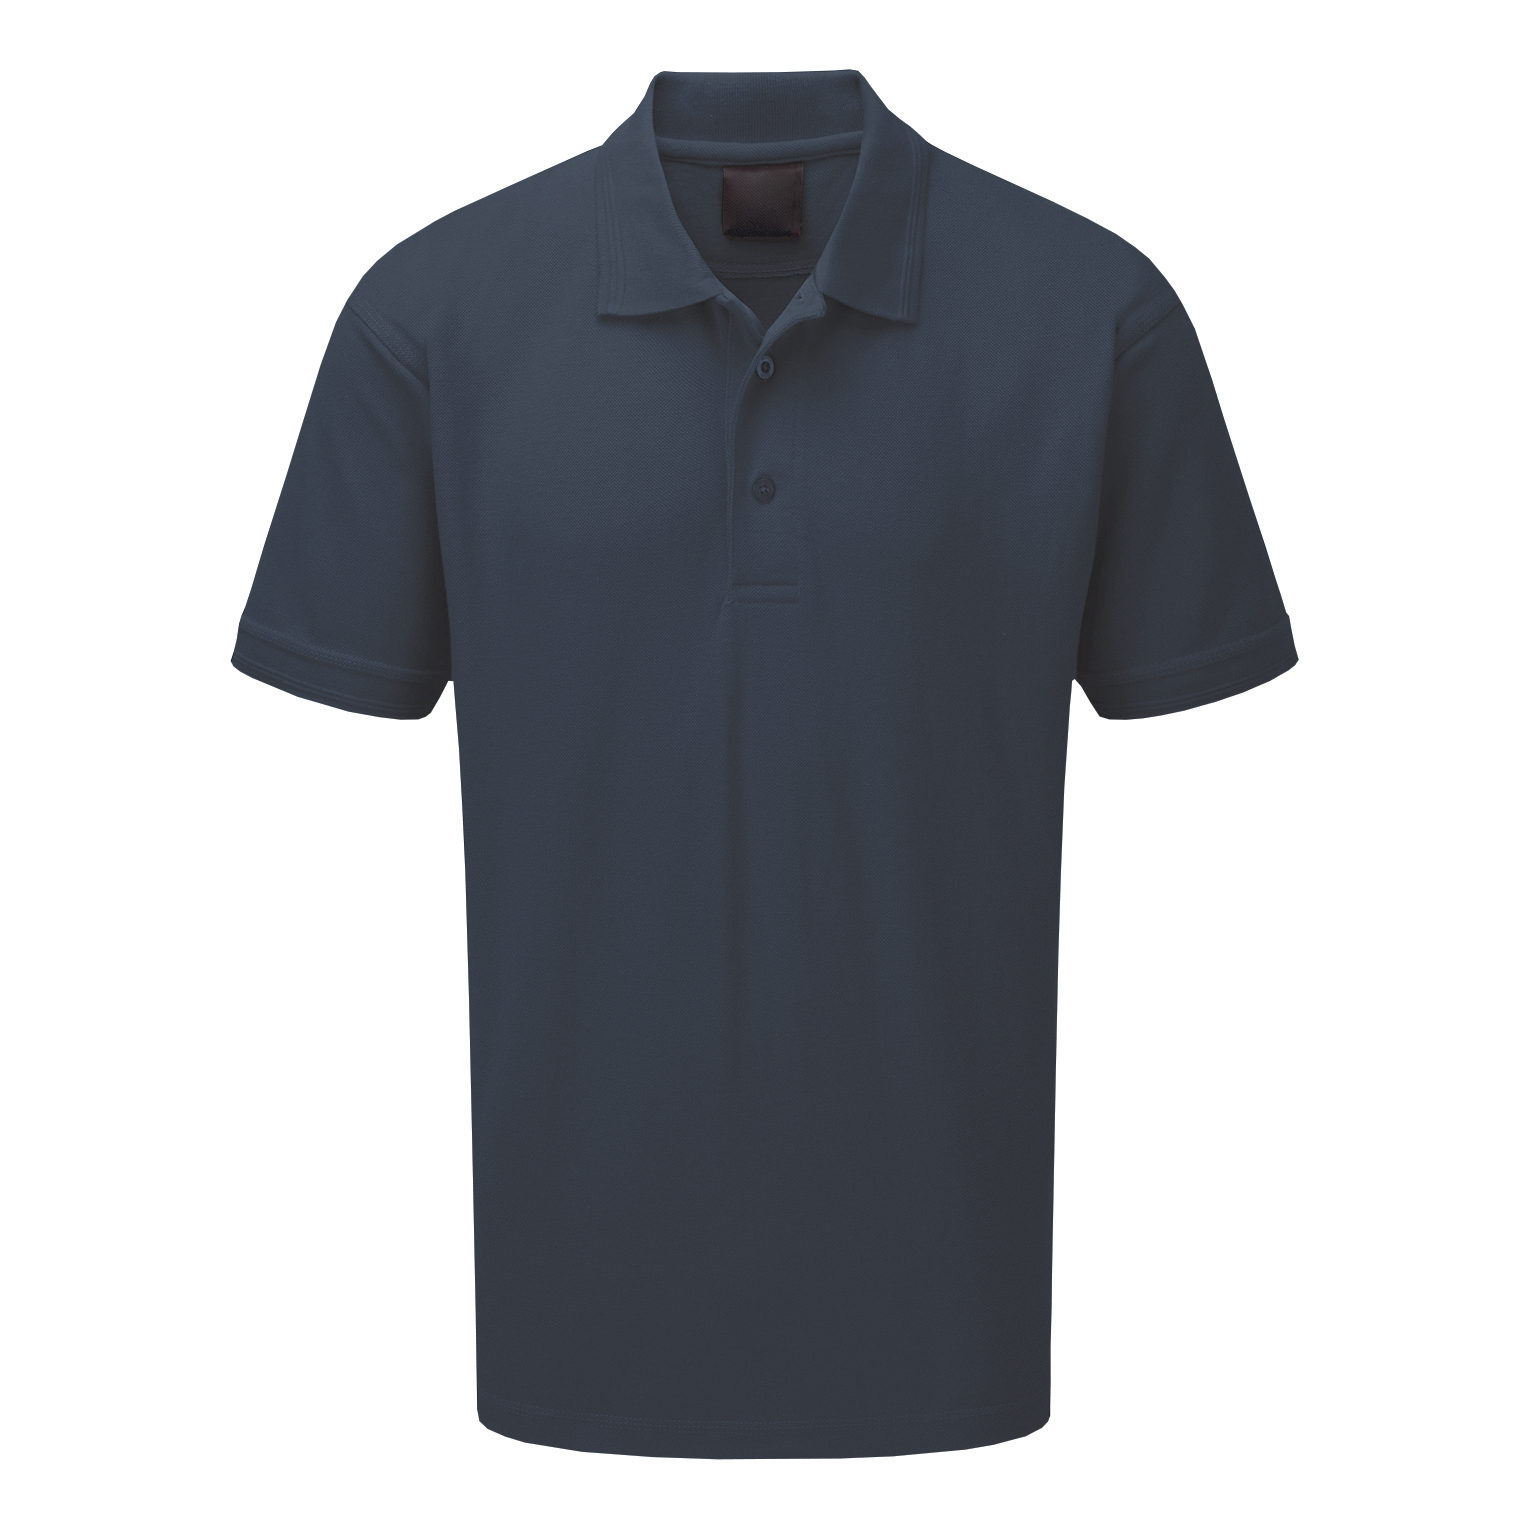 Premium Polo Shirt Triple Button 220gsm Polycotton 2XL Graphite Ref CLPKSGYXXL *Approx 3 Day Leadtime*